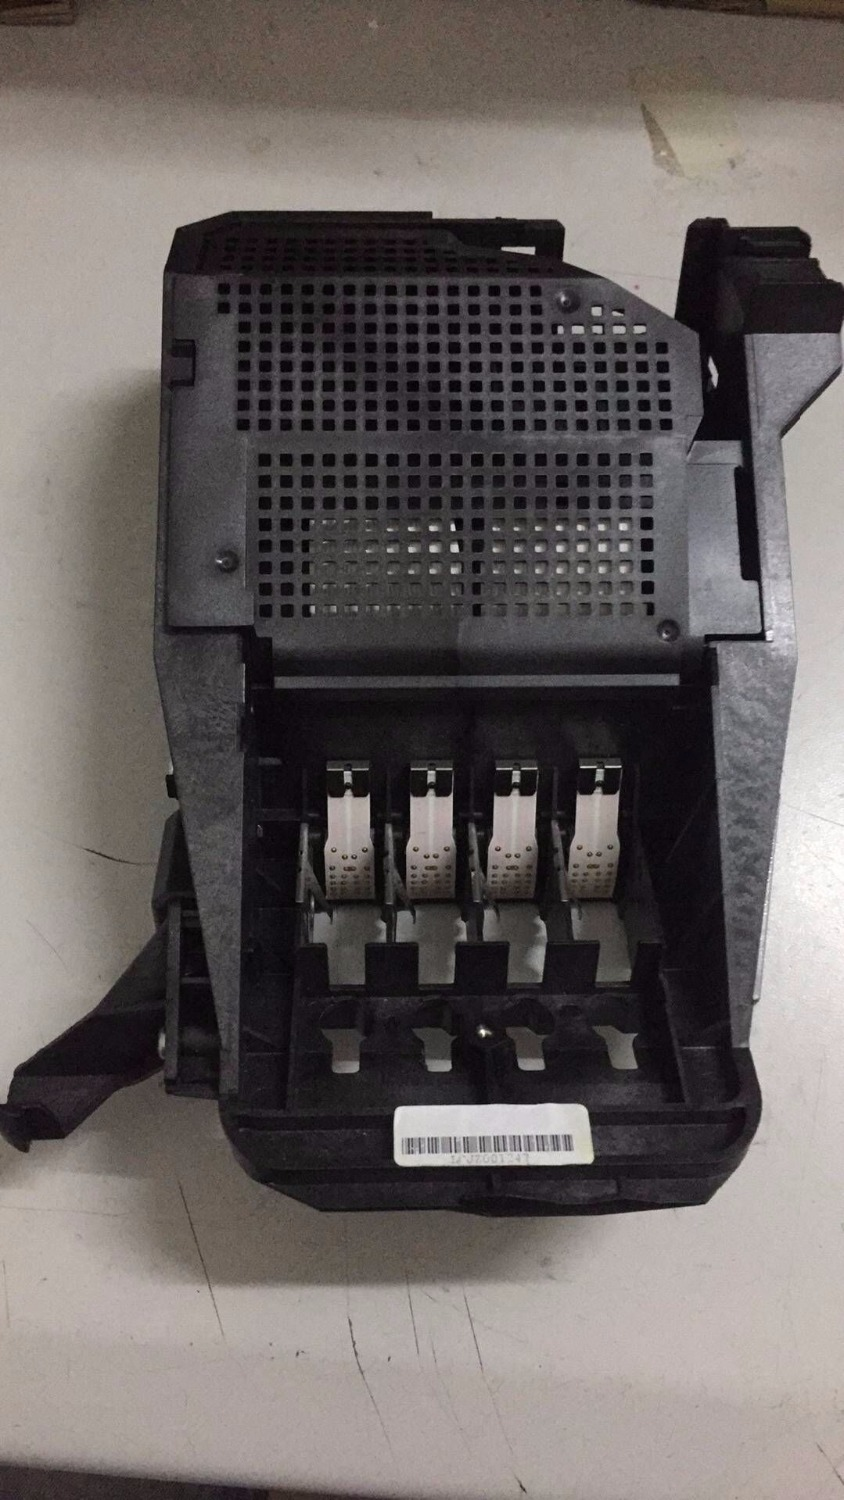 cartridges carriage station for hp 500 510 800 c7779 c7769 printer without detective board and blue cover<br>